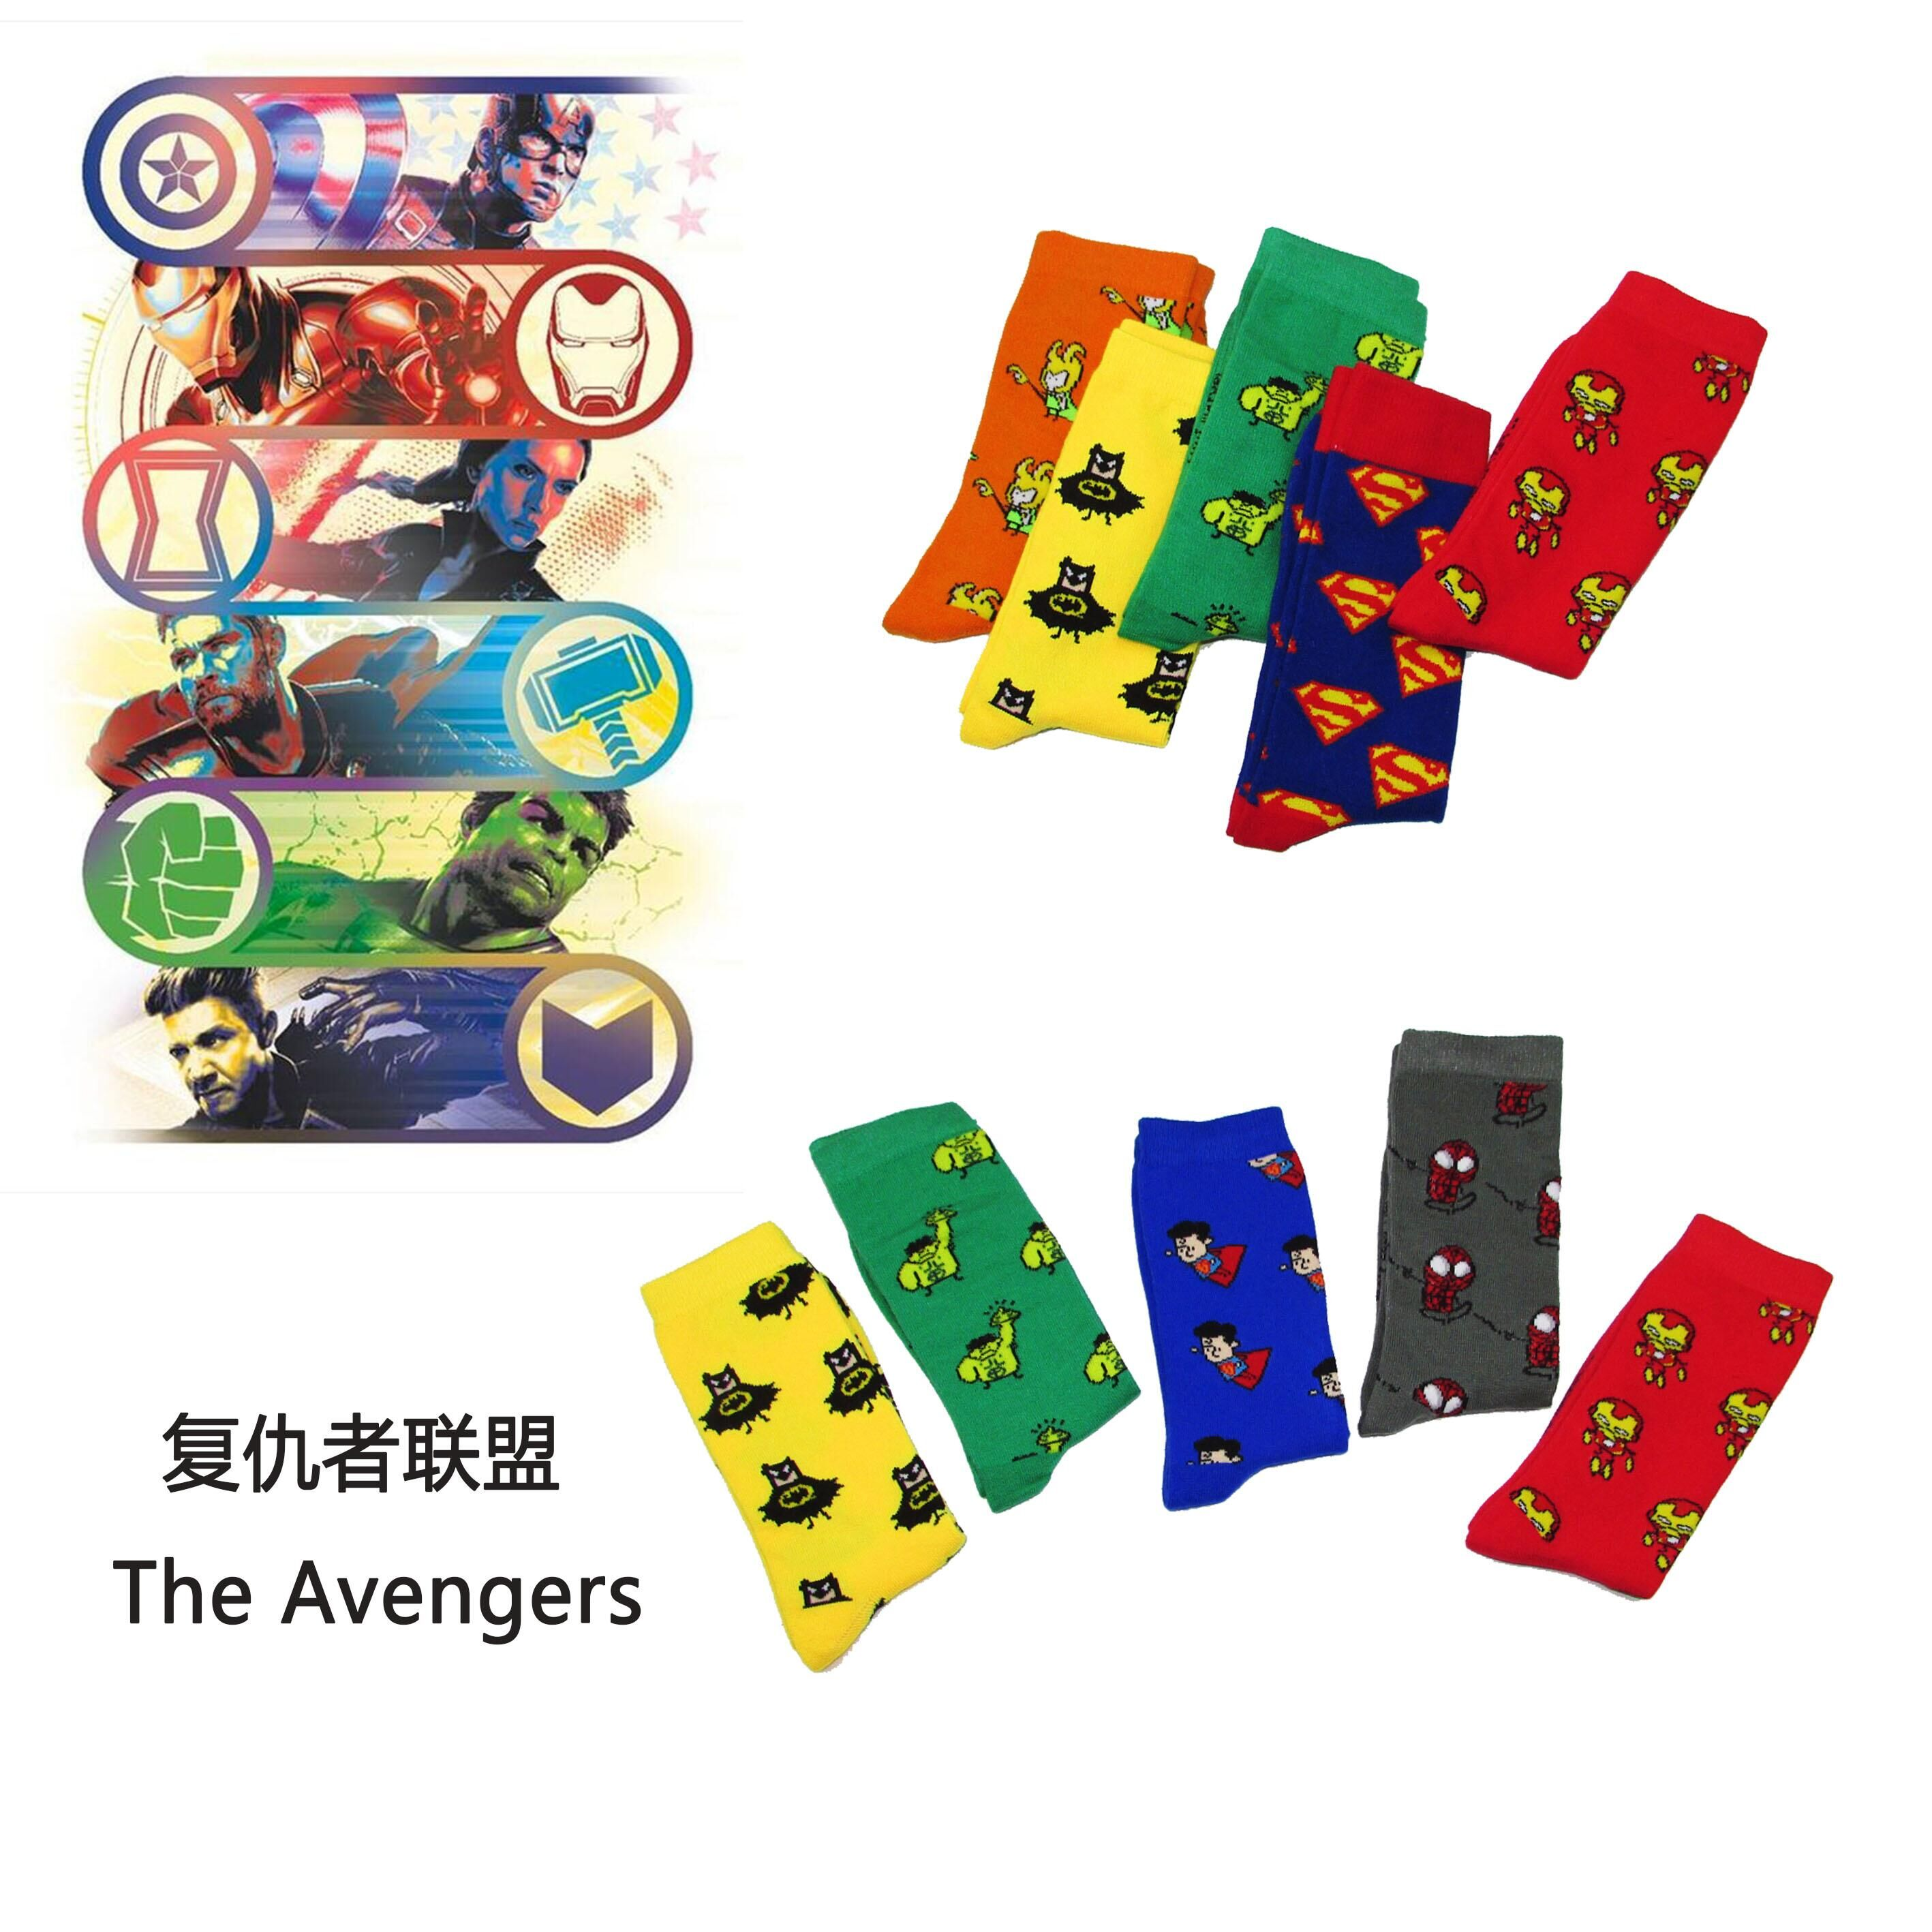 Marvel Cartoon Hero Image   Sock   Funny American Captain Surprise Iron Man Long   Socks   meia Avengers Cartoon Cute   Socks